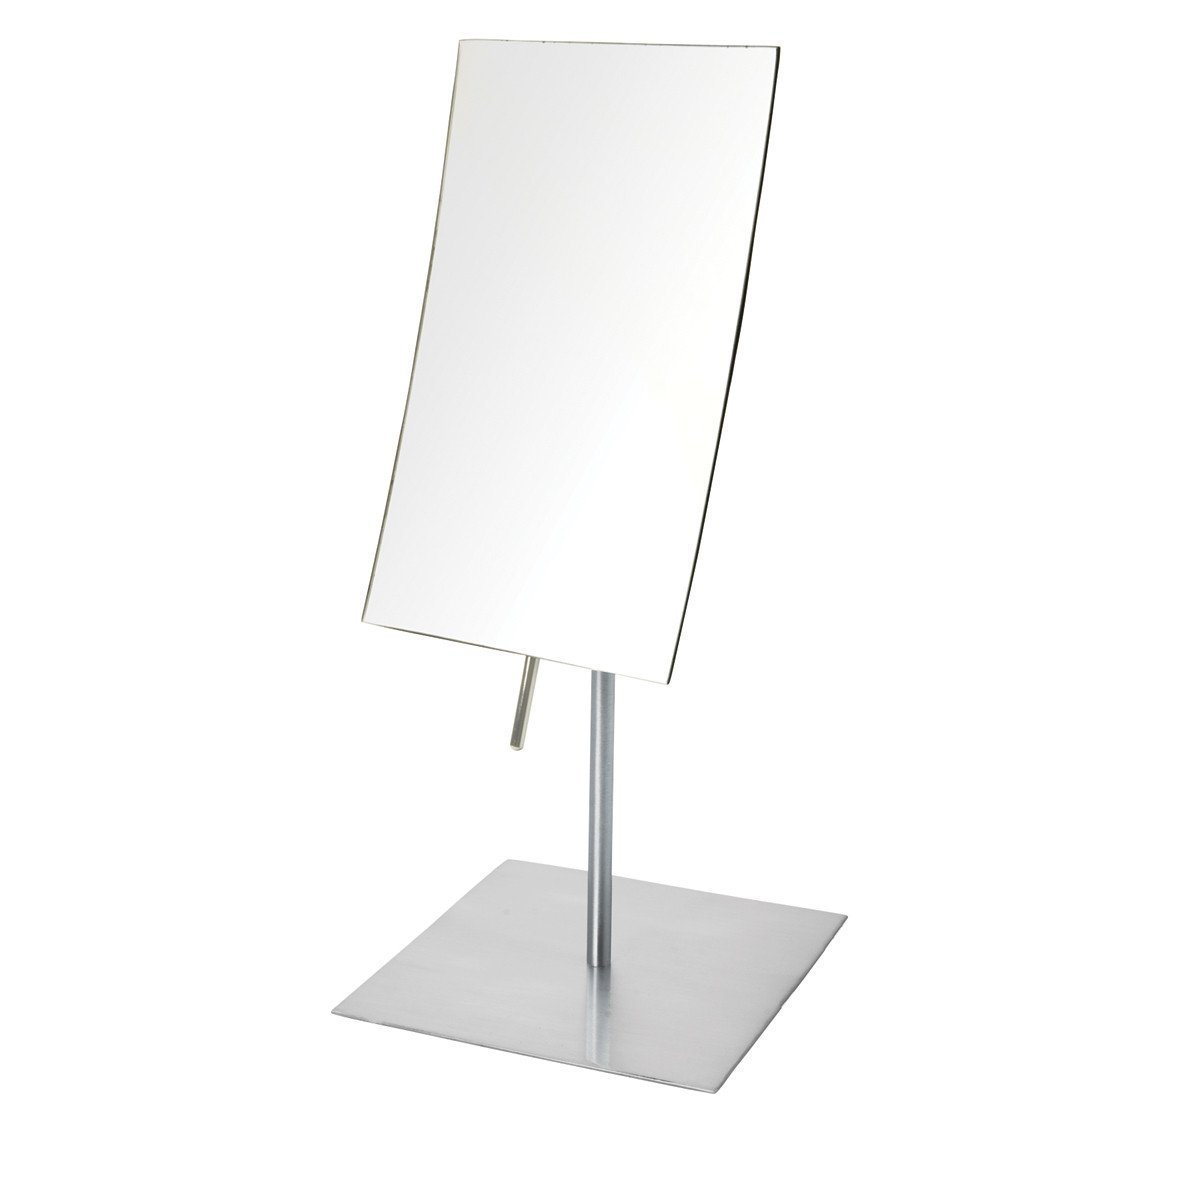 Jerdon JP358N 3X Magnified Tabletop Rectangular Adjustable Mirror, Nickel, 51.2 Ounce by Jerdon